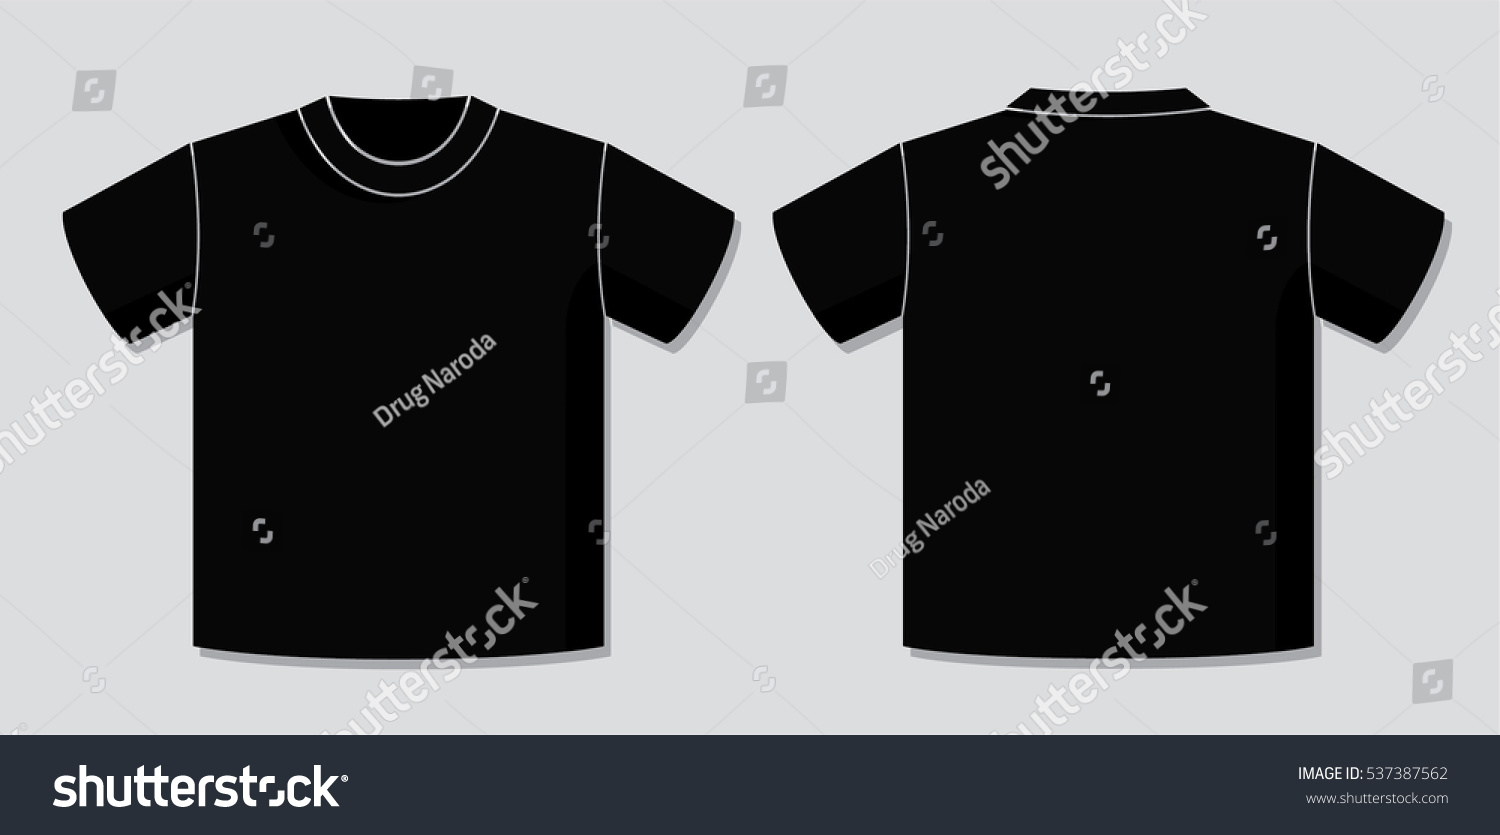 Black t shirt vector front and back - T Shirt Vector Template With Front And Back View Of The Unisex Blank Garment Design